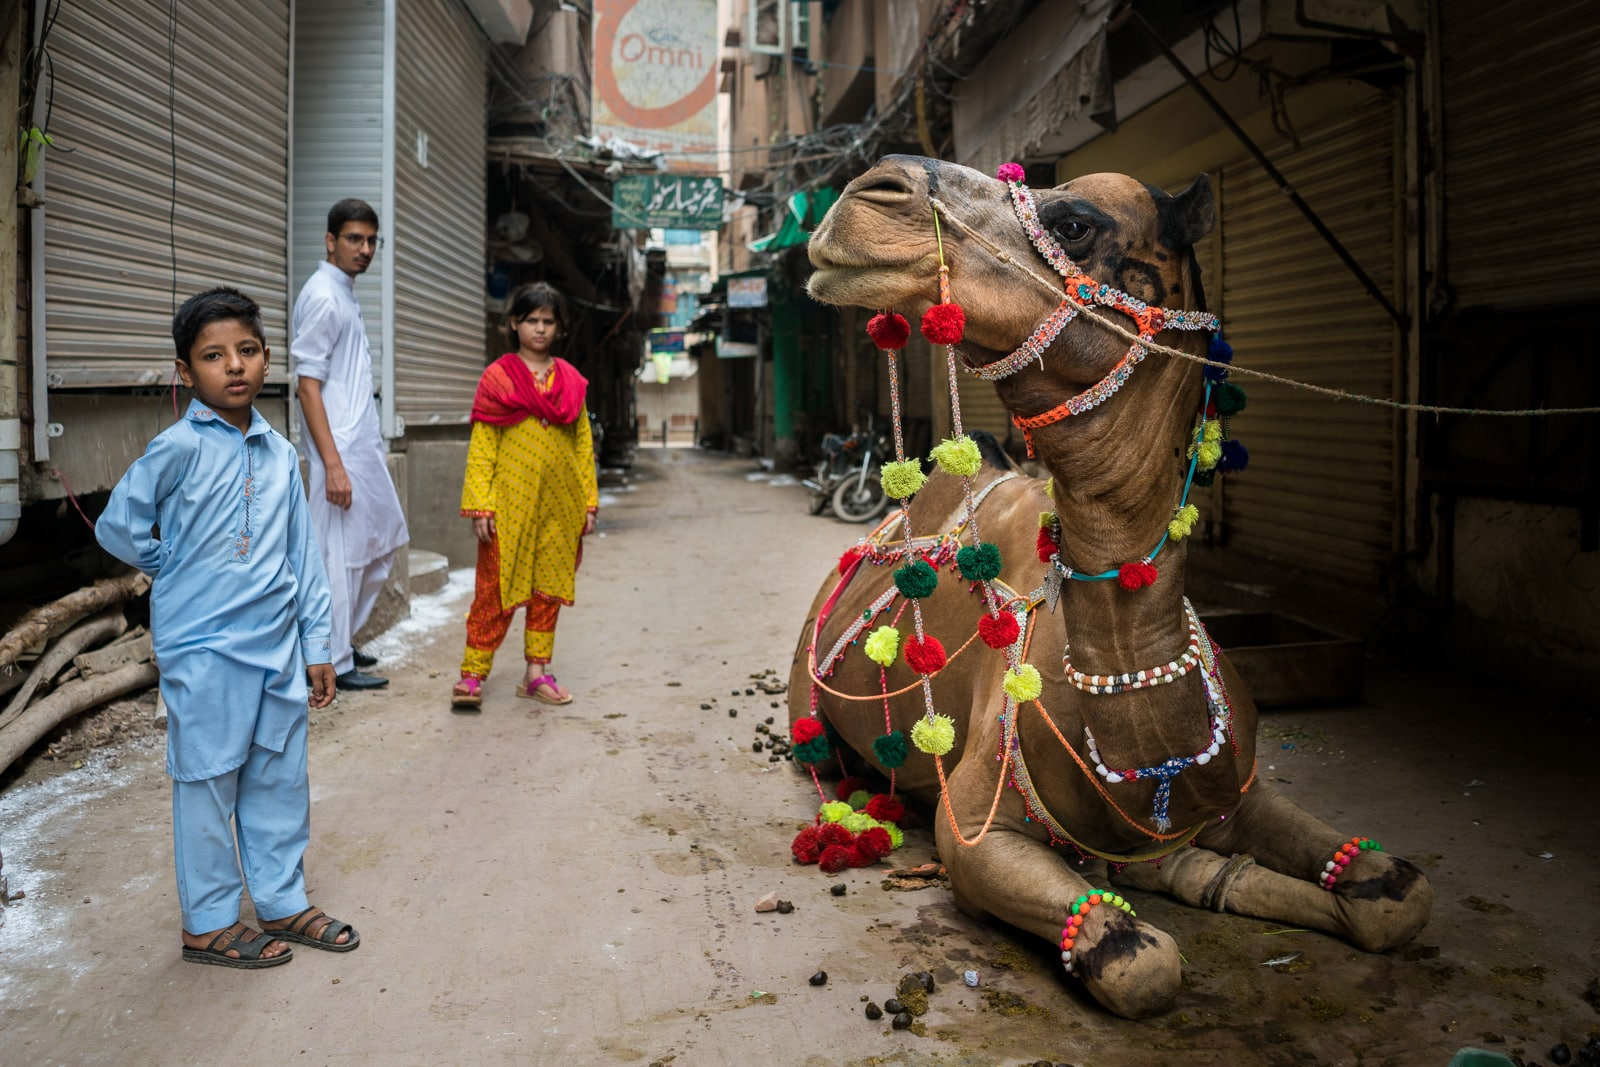 Celebrating Eid al-Adha in Lahore, Pakistan - Street kids and a camel - Lost WIth Purpose travel blog